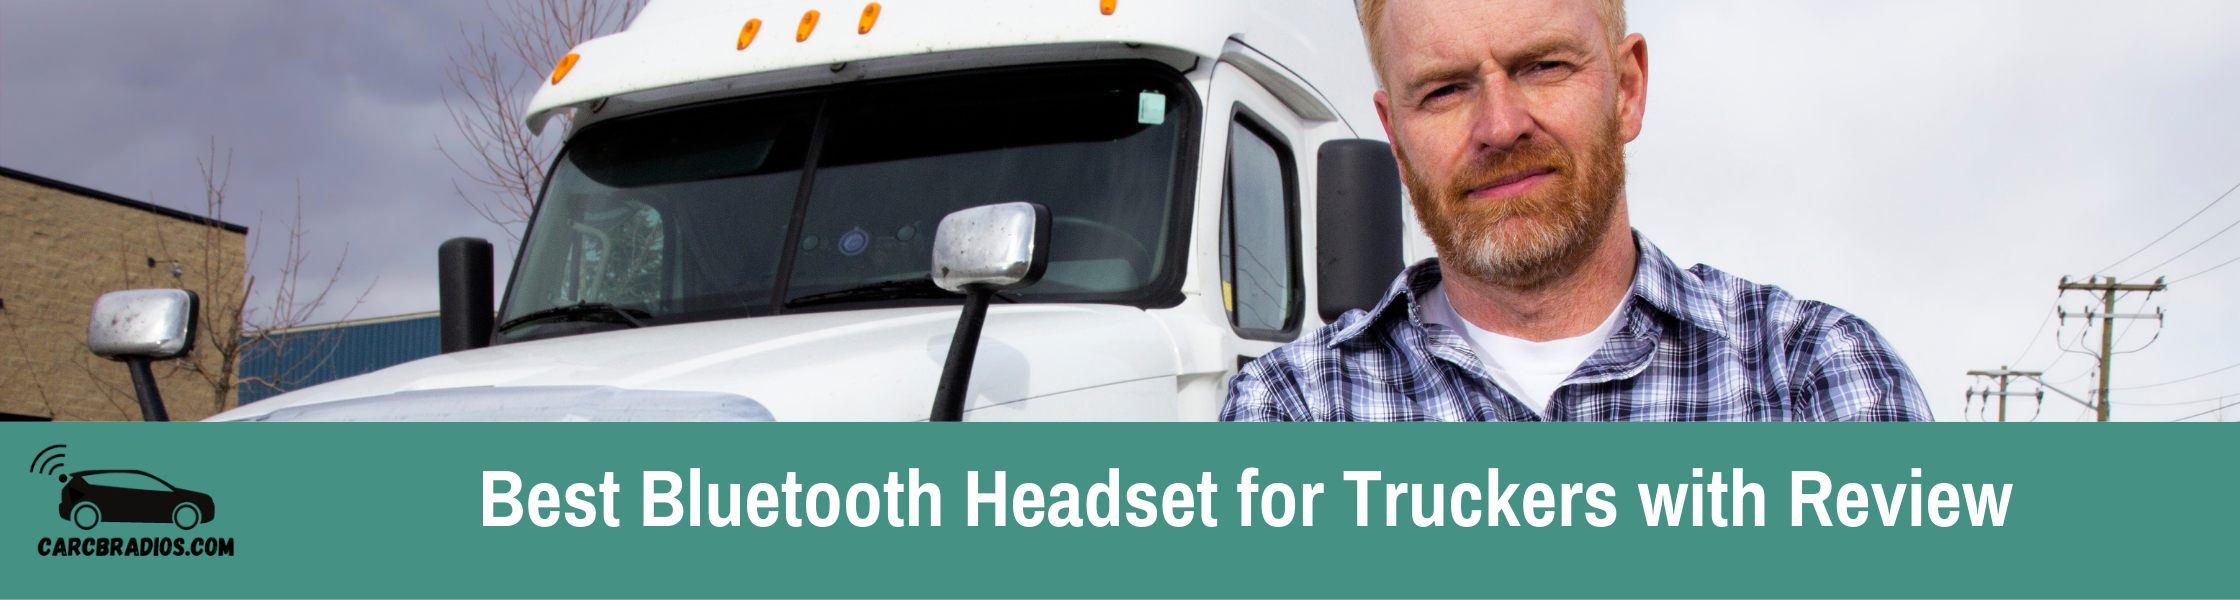 Best Bluetooth Headset for Truckers: A Bluetooth headset makes the life of truck drivers convenient. Truck drivers can wear Bluetooth headsets with comfort all day and can perform their driving duty effectively.